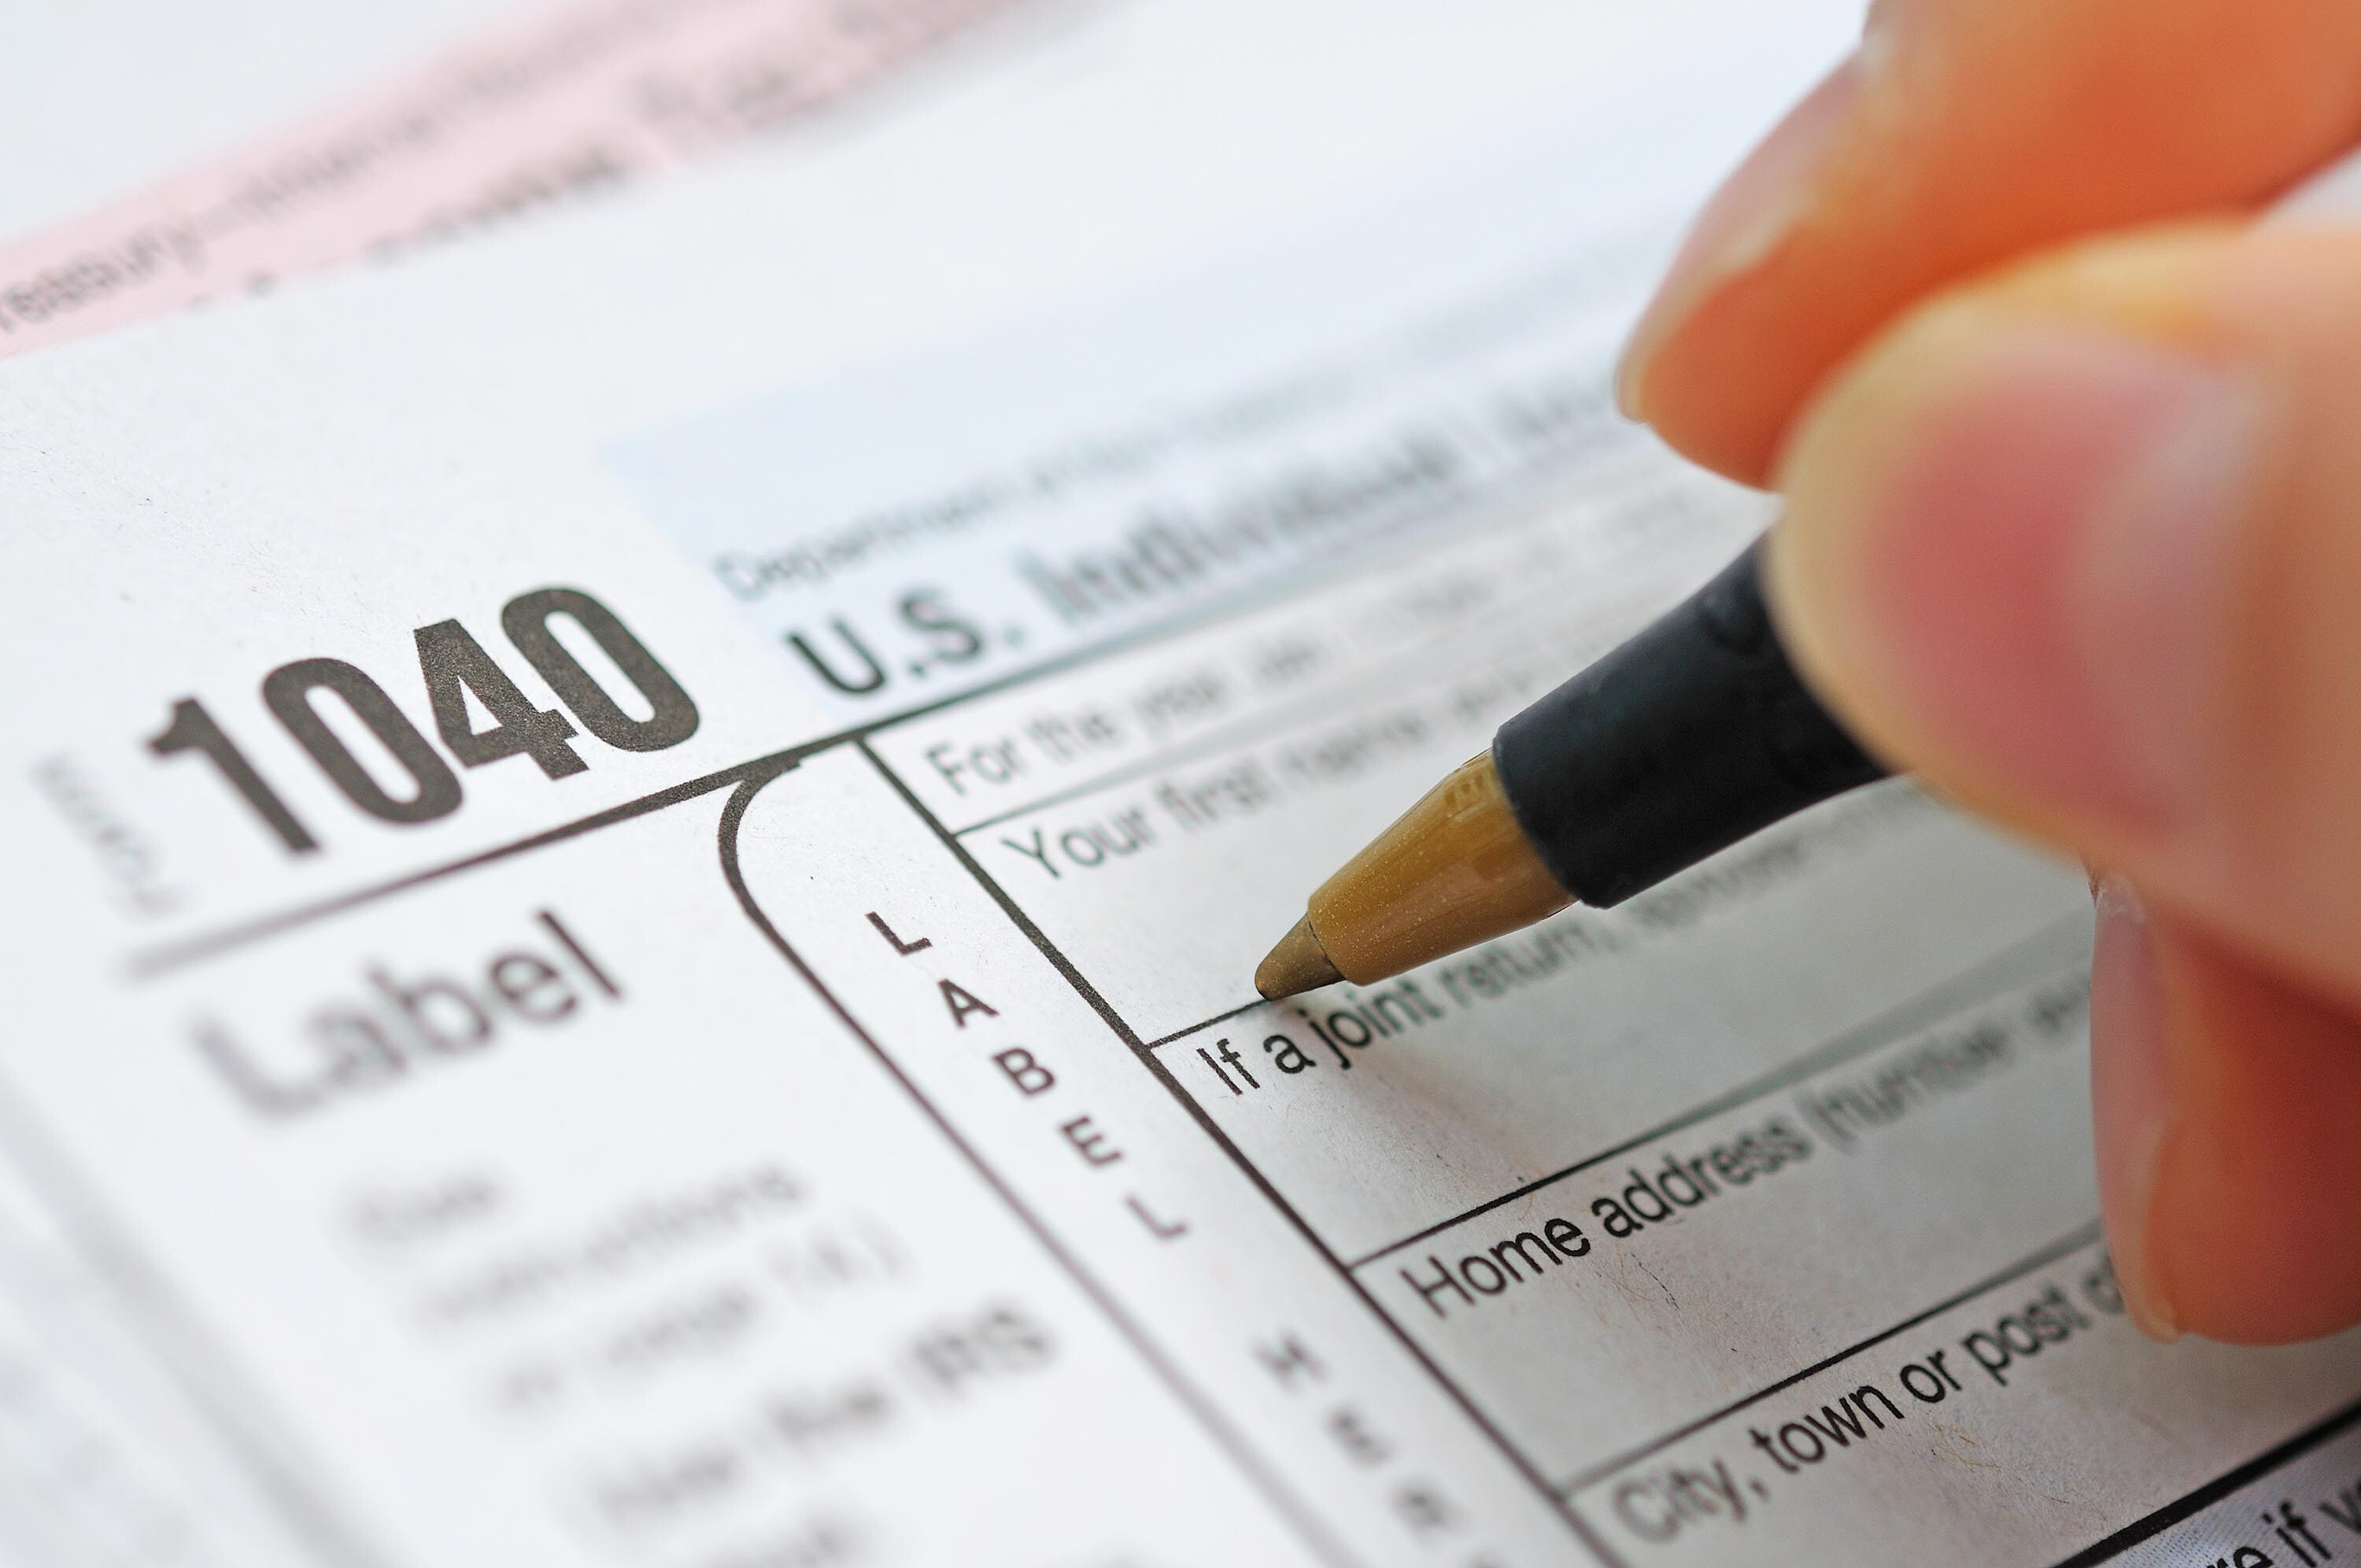 Jack Lew: How to get the wealthy to pay the taxes they owe